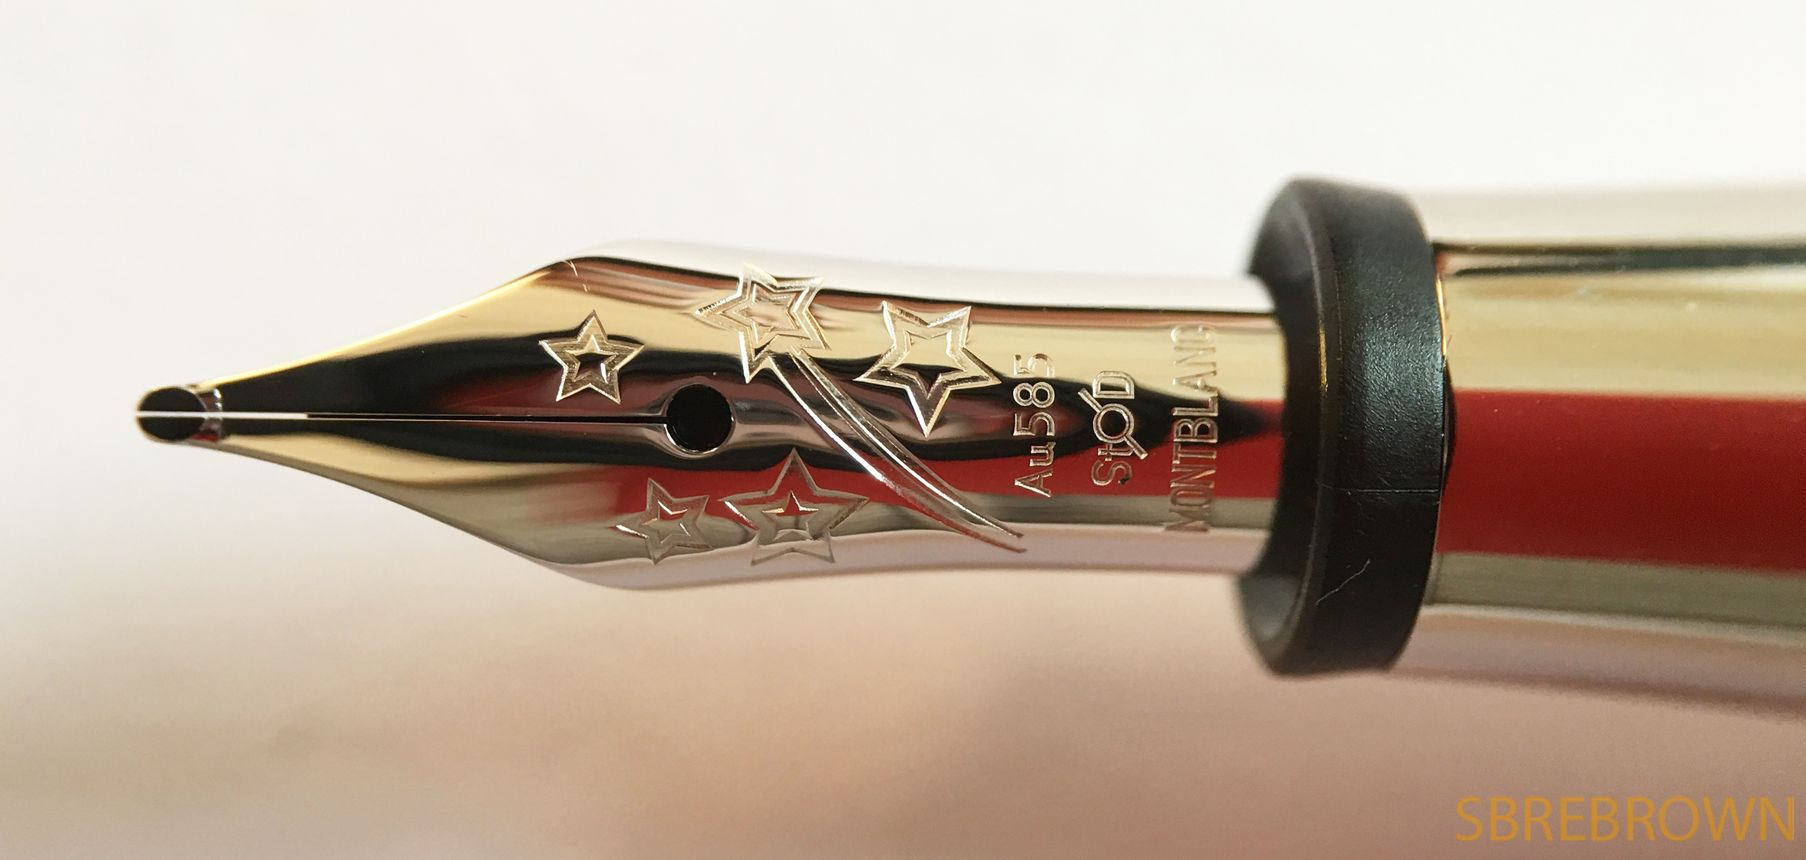 4c9efabc701f0 Montblanc Bonheur Fountain Pen Review   Hey there! SBREBrown